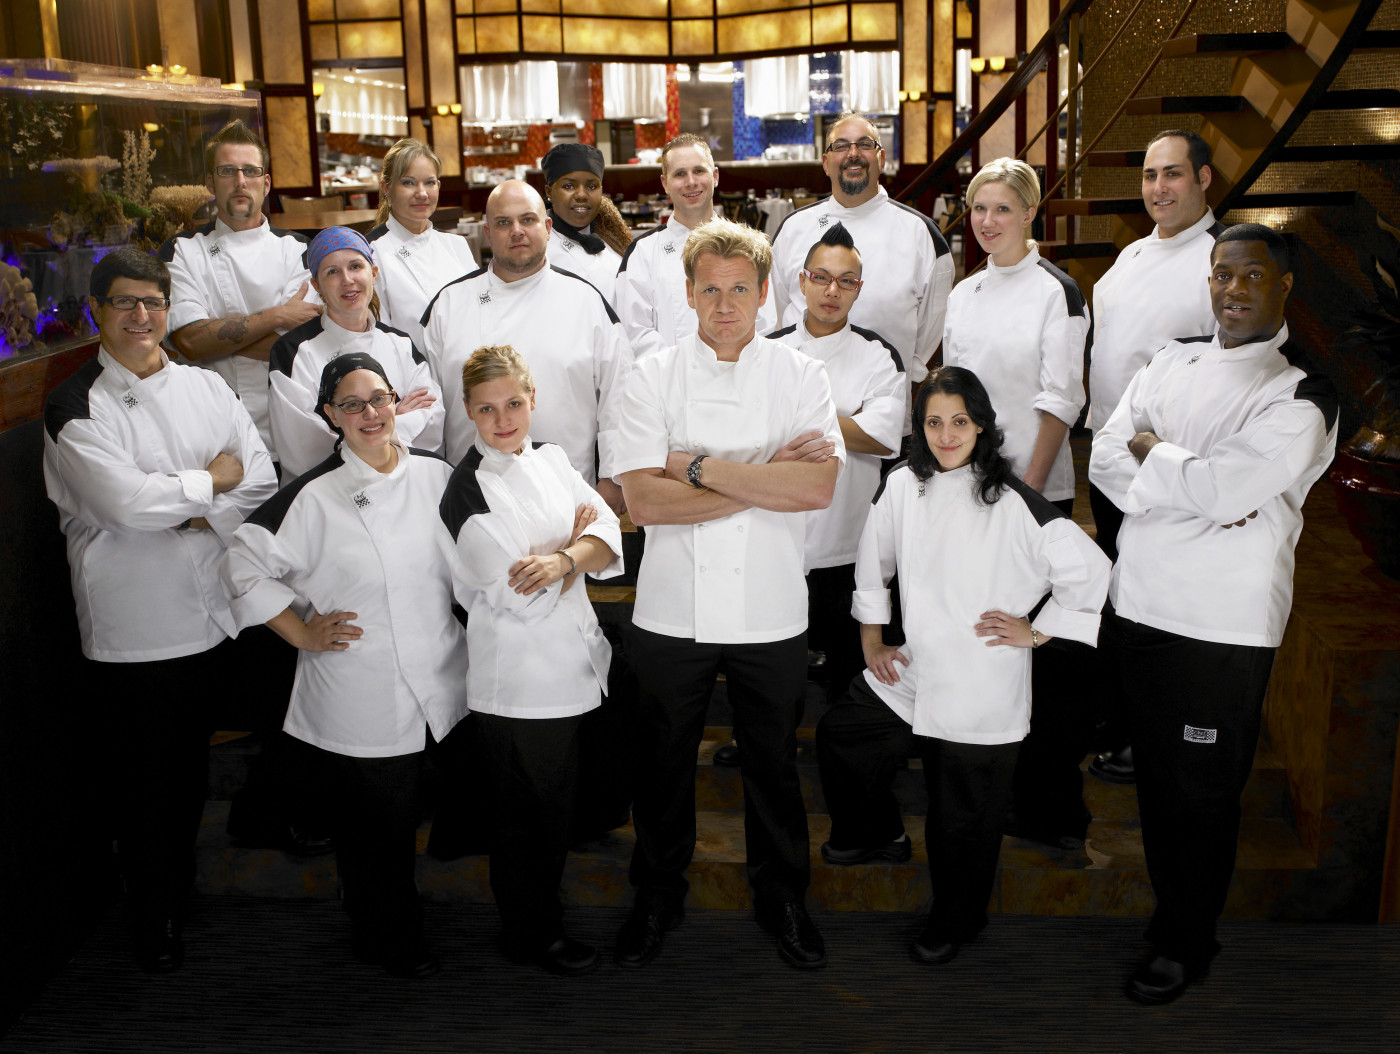 Hell's Kitchen, Season 4 Contestants (Fox Broadcasting Network)